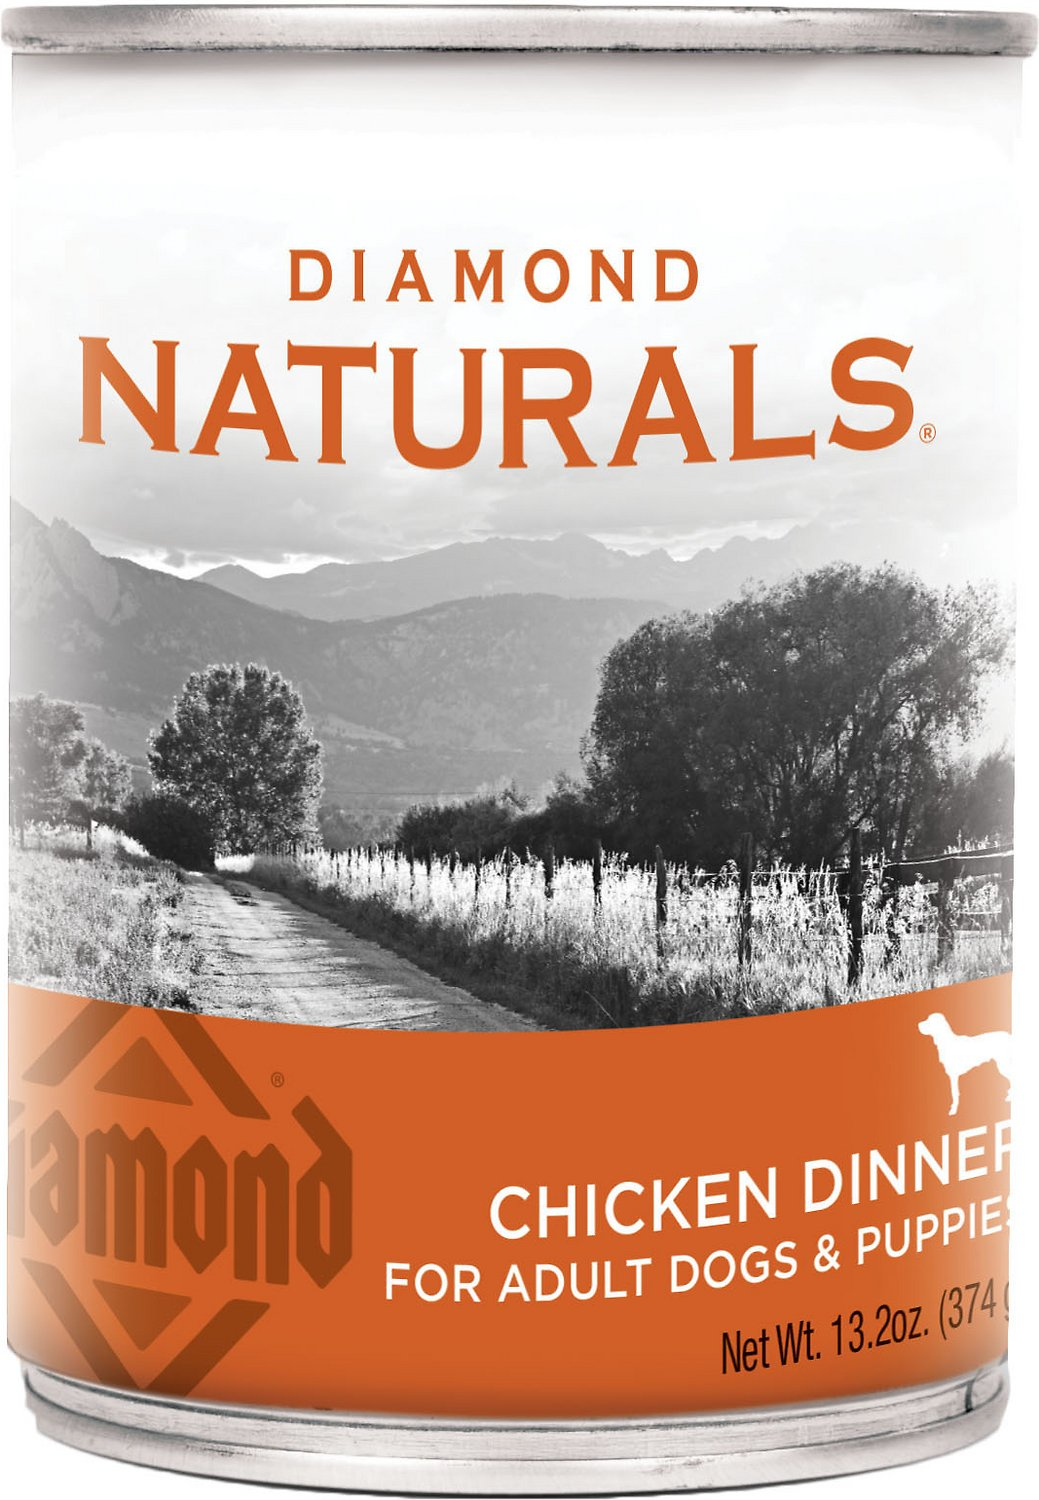 Diamond Naturals Chicken Dinner Adult & Puppy Canned Dog Food Image